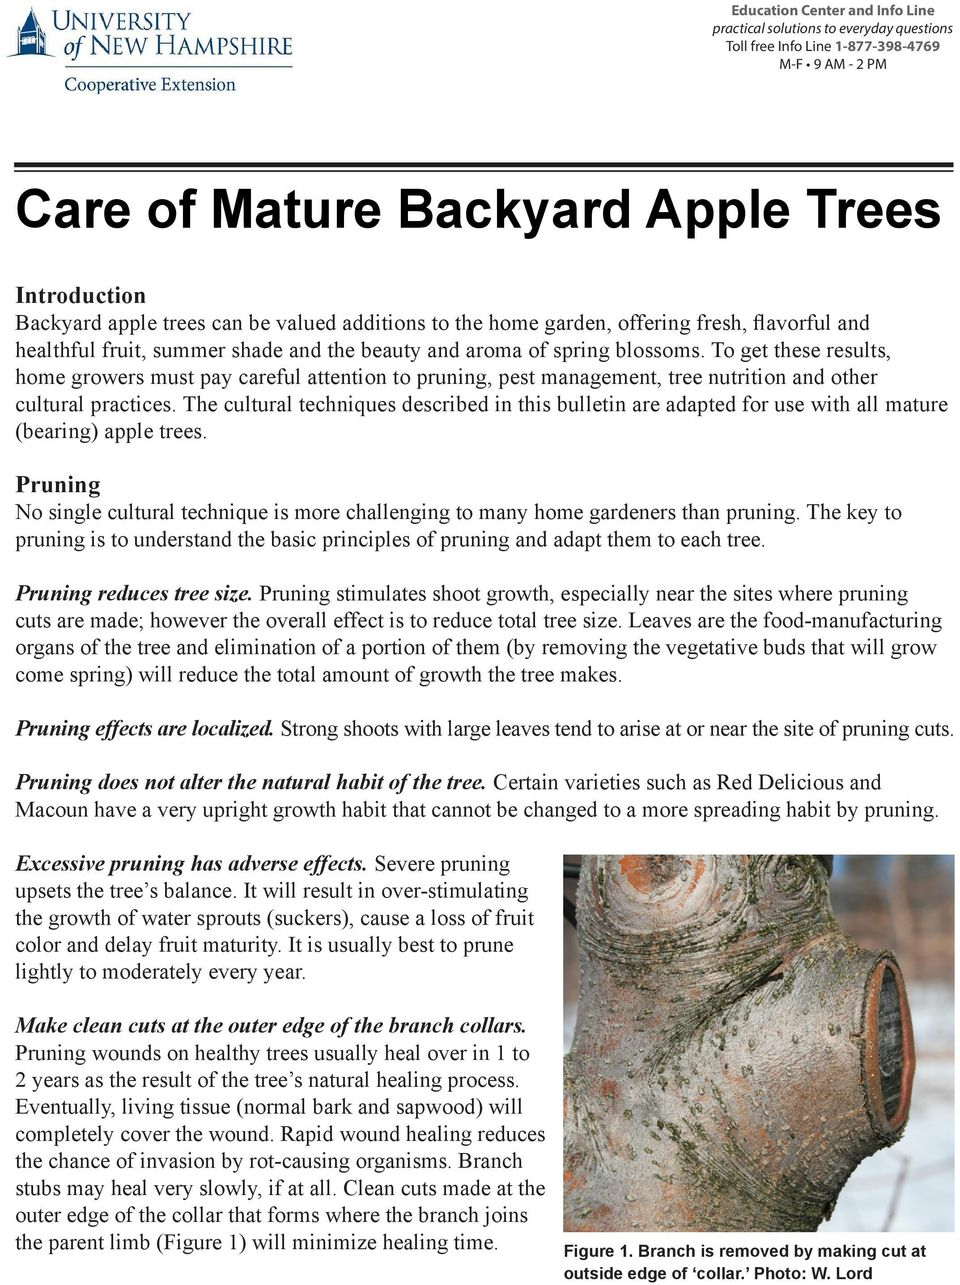 To get these results, home growers must pay careful attention to pruning, pest management, tree nutrition and other cultural practices.